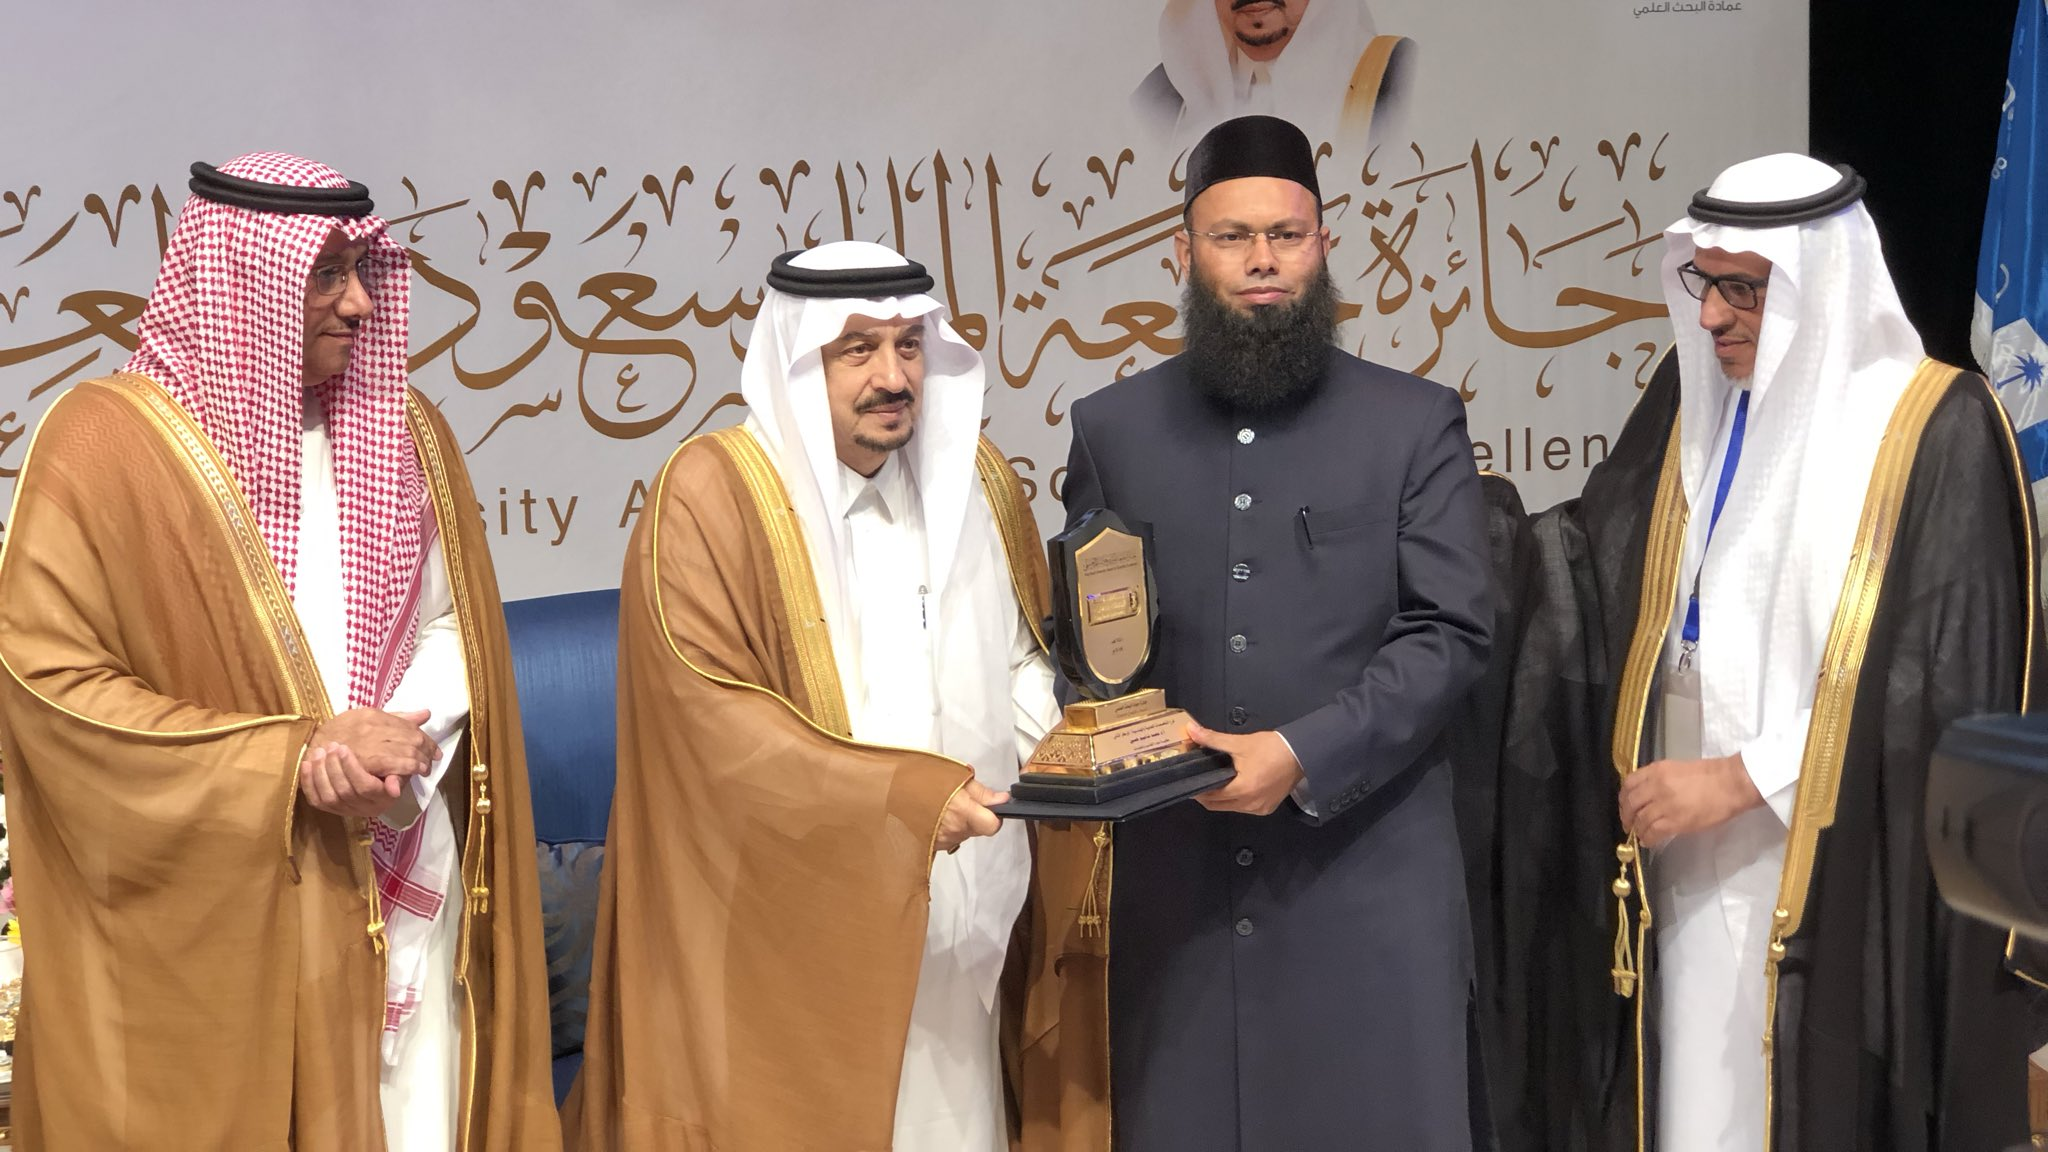 Bangladeshi scientist awarded in Saudi Arabia